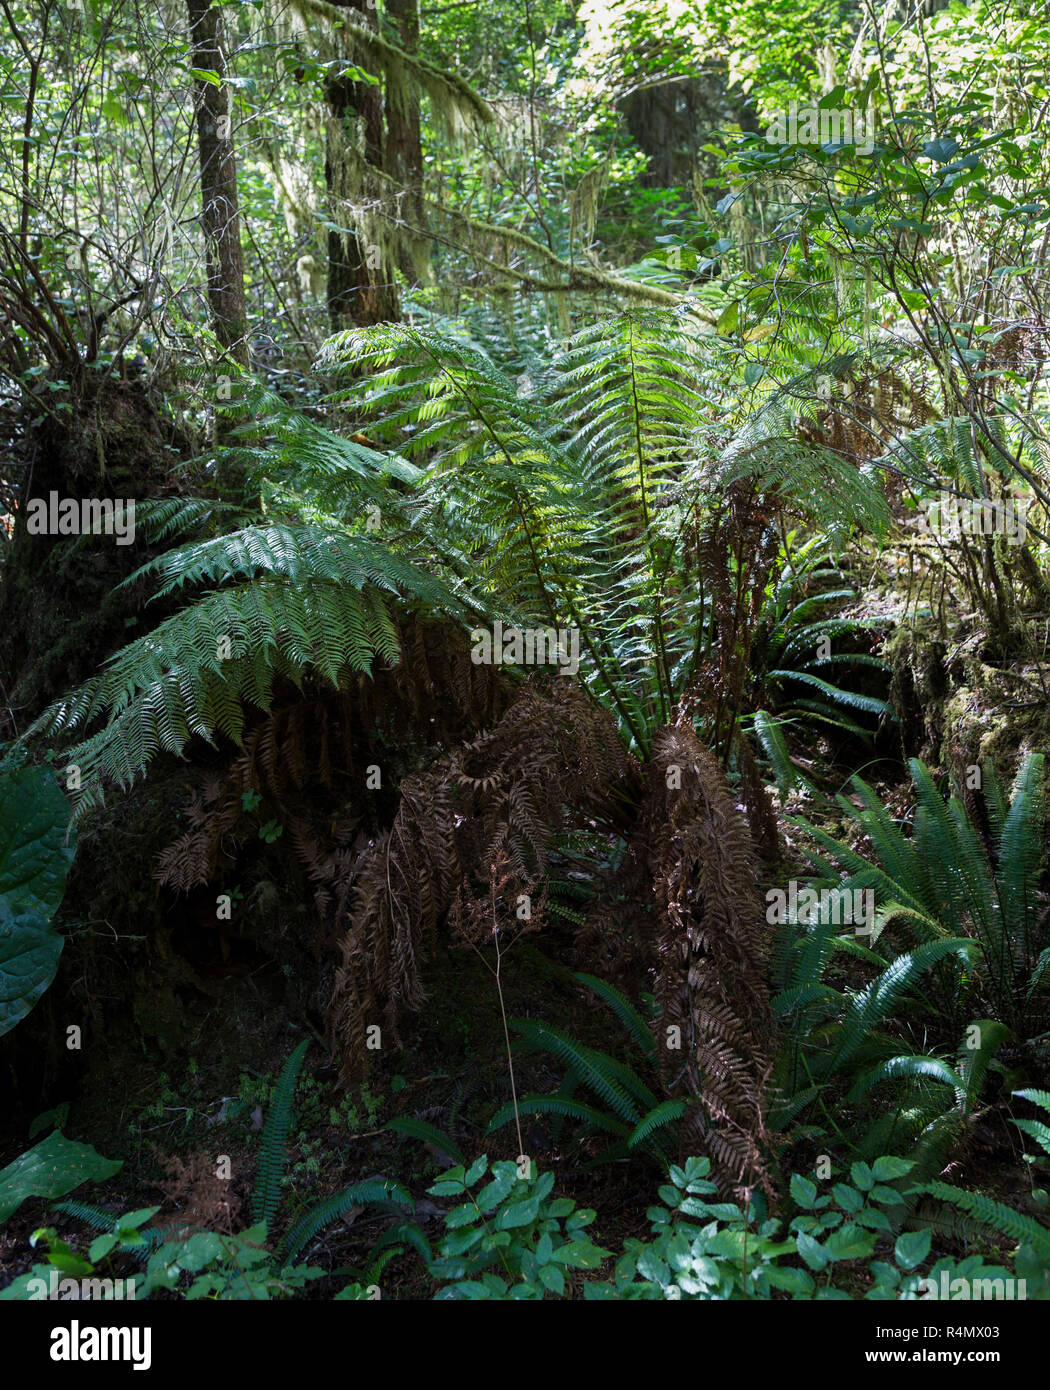 Woodland area with ferns in Tofino gardens, Tofino, Vancouver Island, Pacific Rim National Park Reserve, British Columbia, Canad - Stock Image